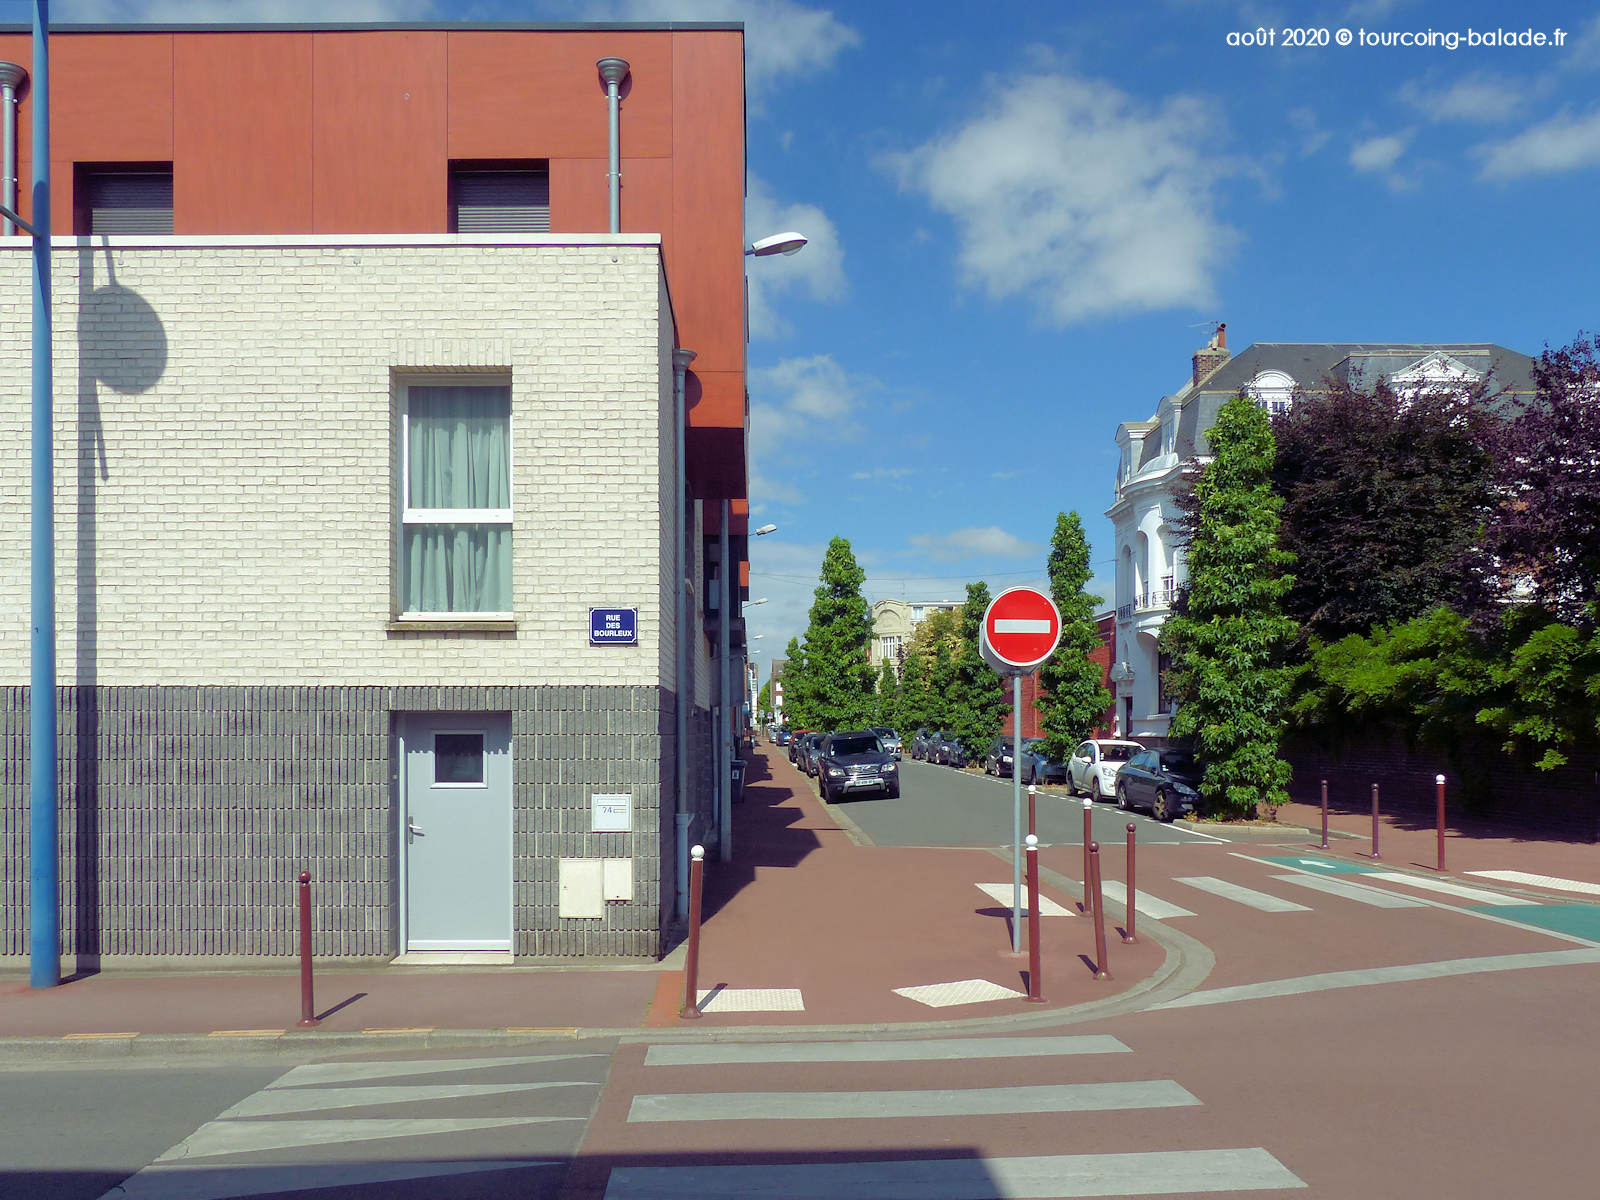 Rue Pasteur, Tourcoing 2020